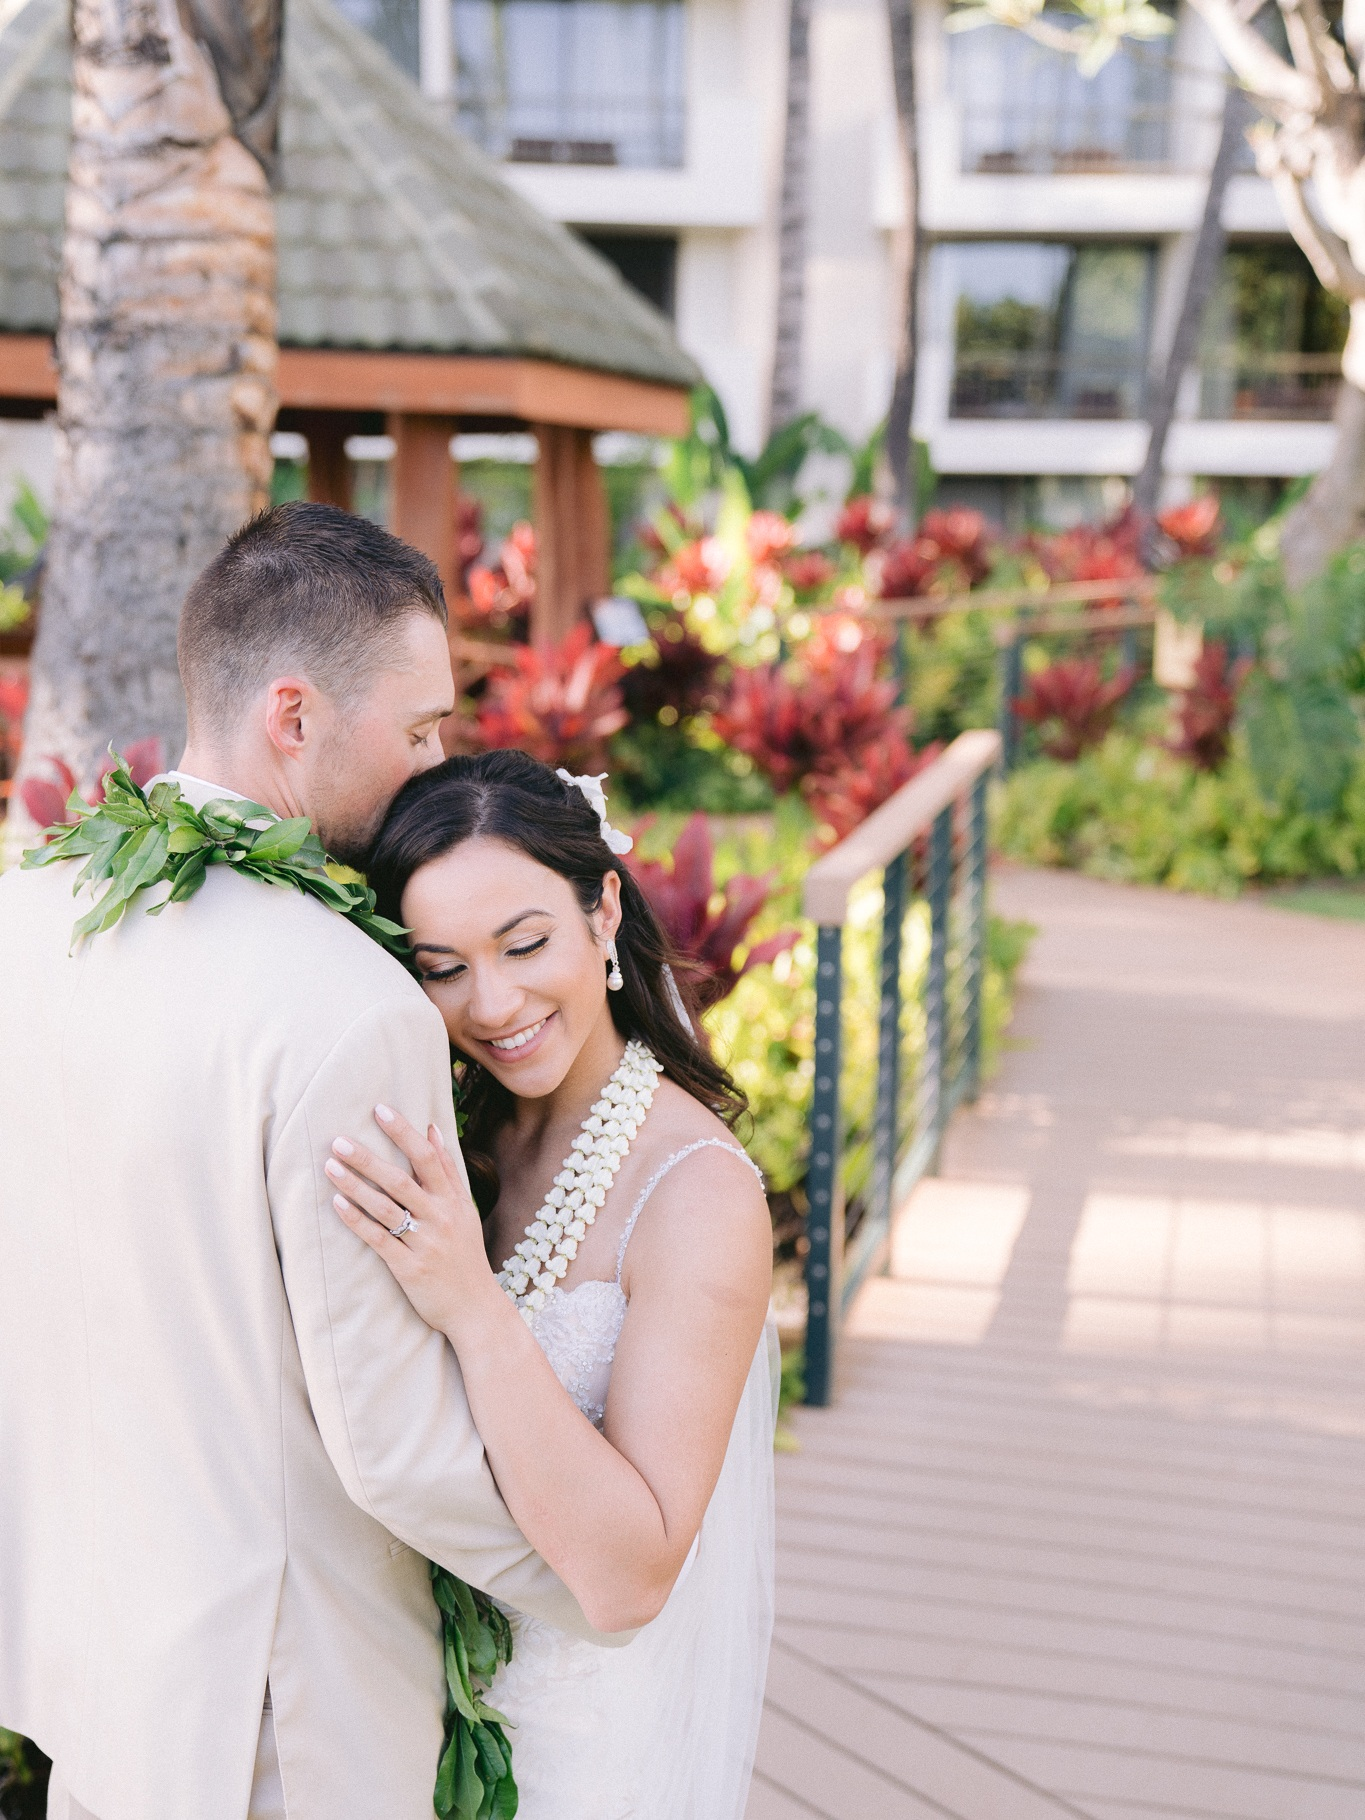 fine art wedding portrait of just married husband and wife embracing at hyatt regecncy maui destination wedding in lahaina hawaii taken by bay area wedding photographer, vivo photography.